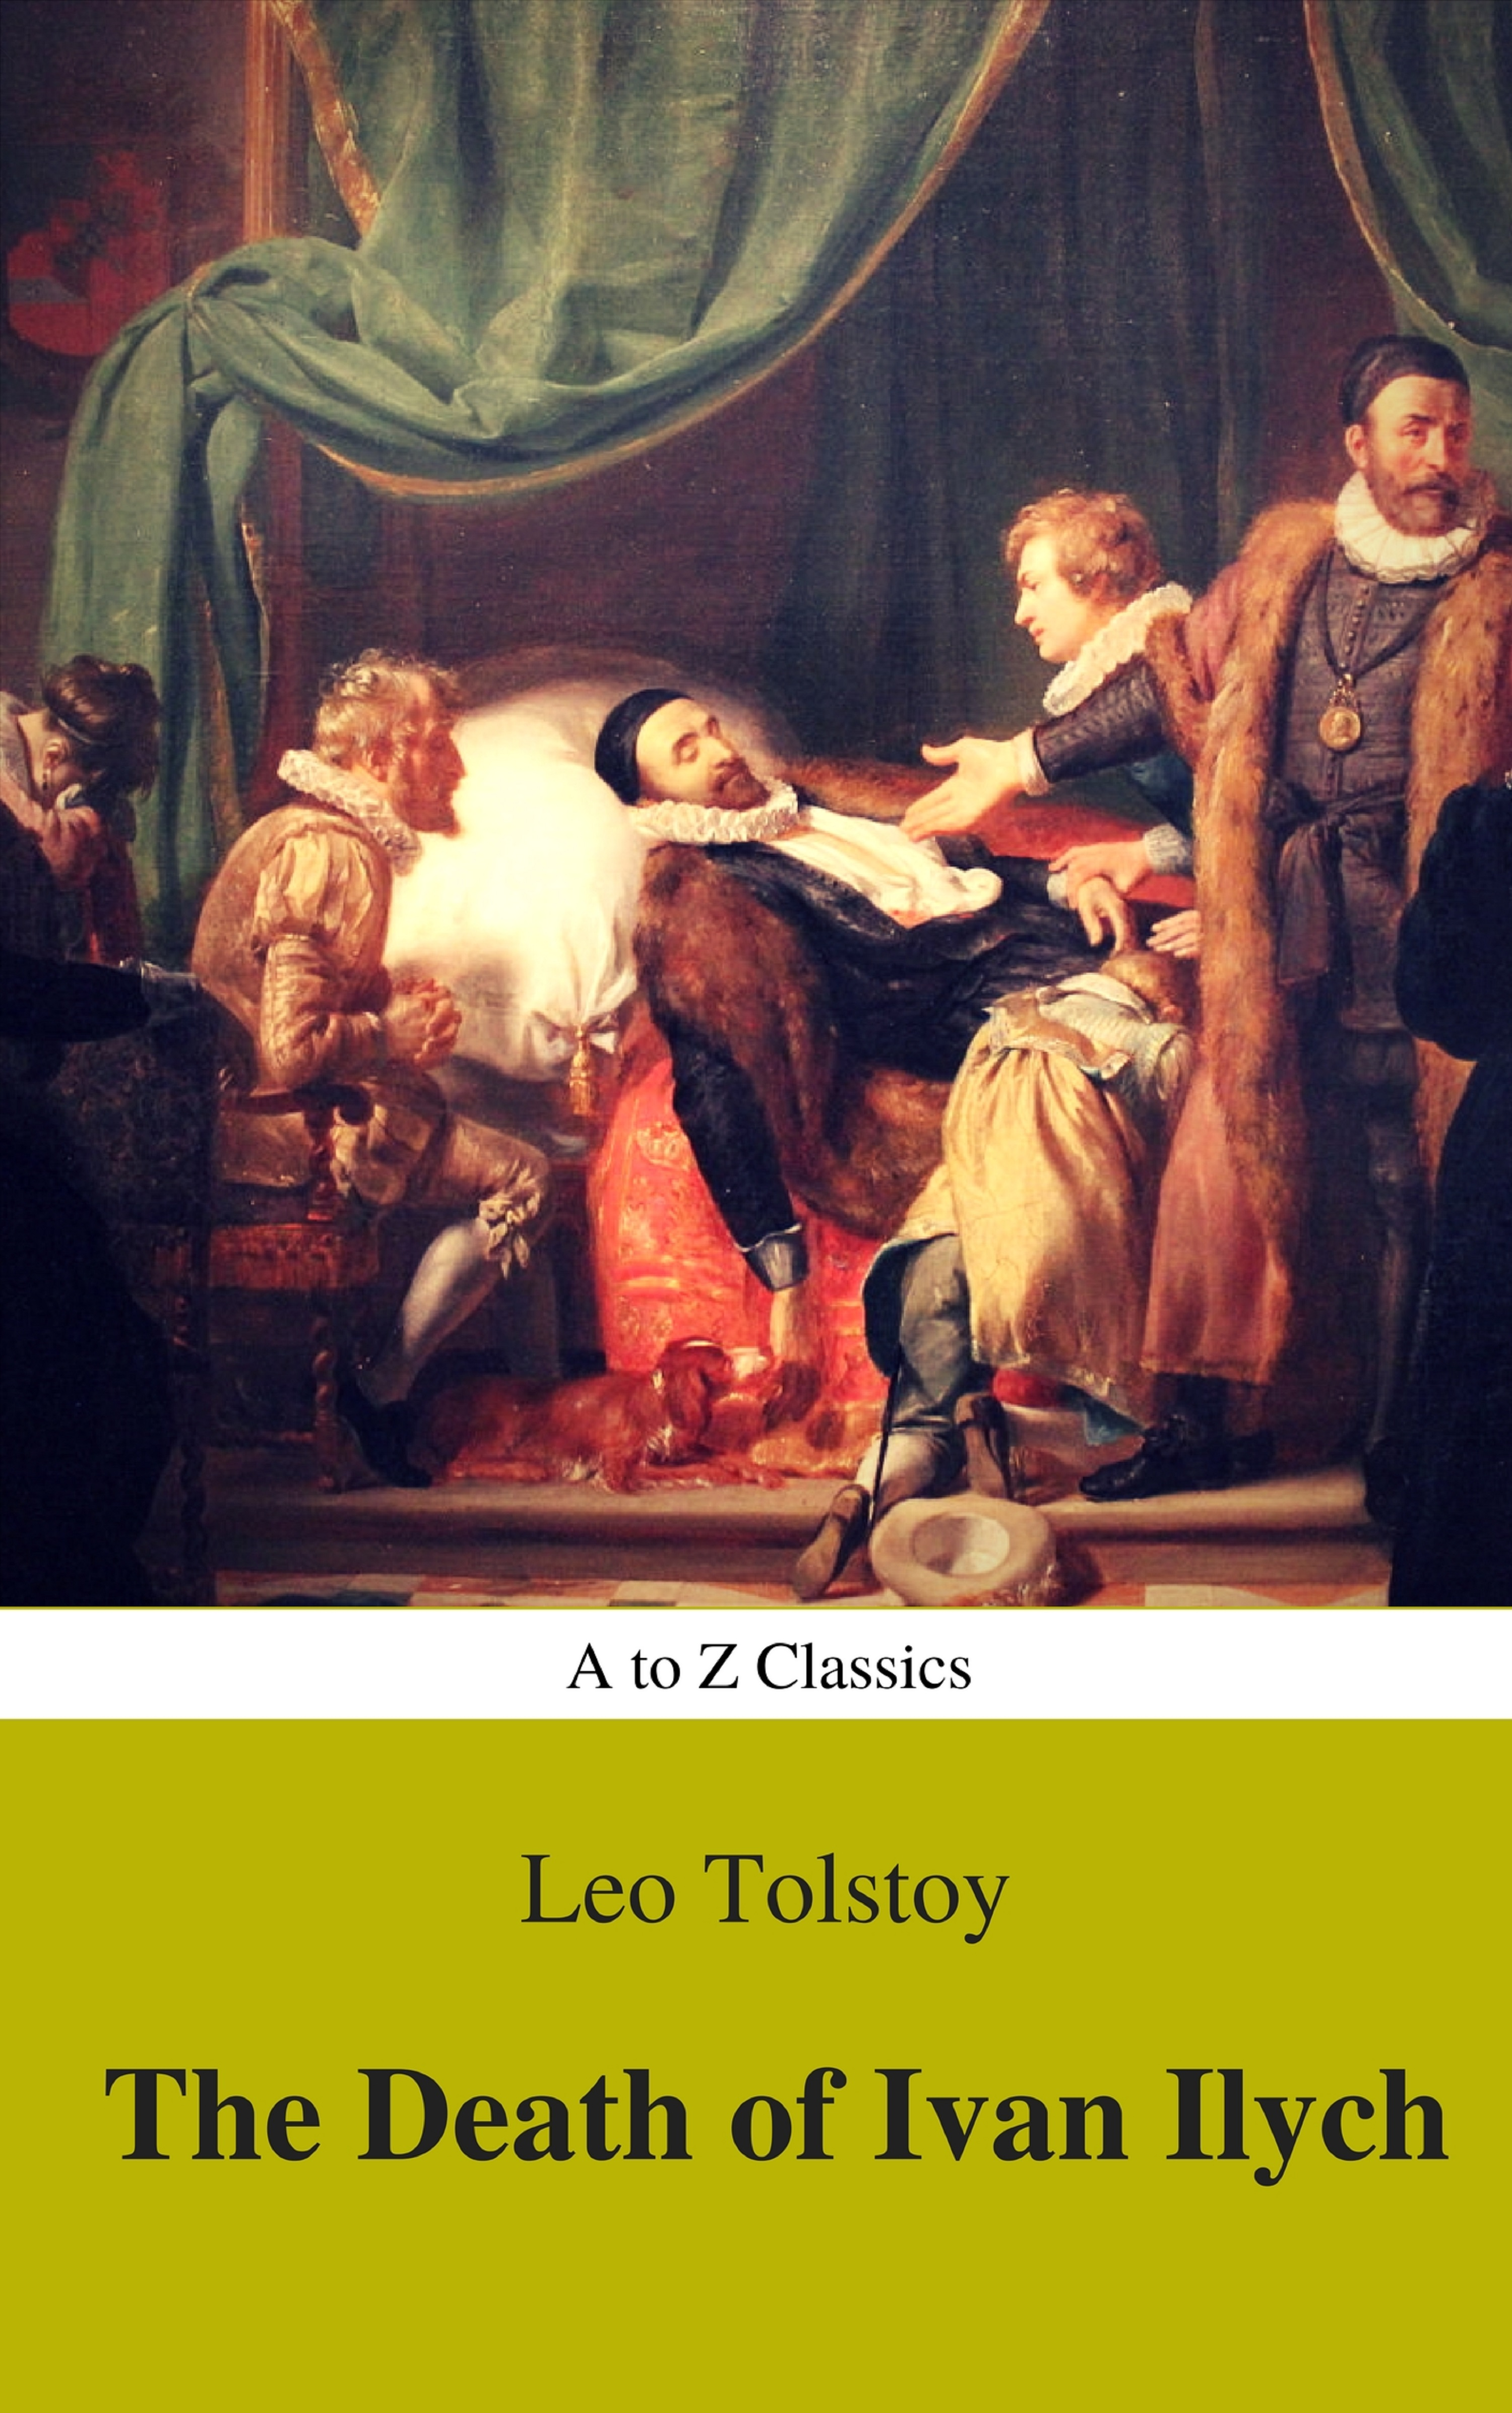 Lev Nikolayevich Tolstoy The Death of Ivan Ilych (Complete Version, Best Navigation, Active TOC) (A to Z Classics) цена